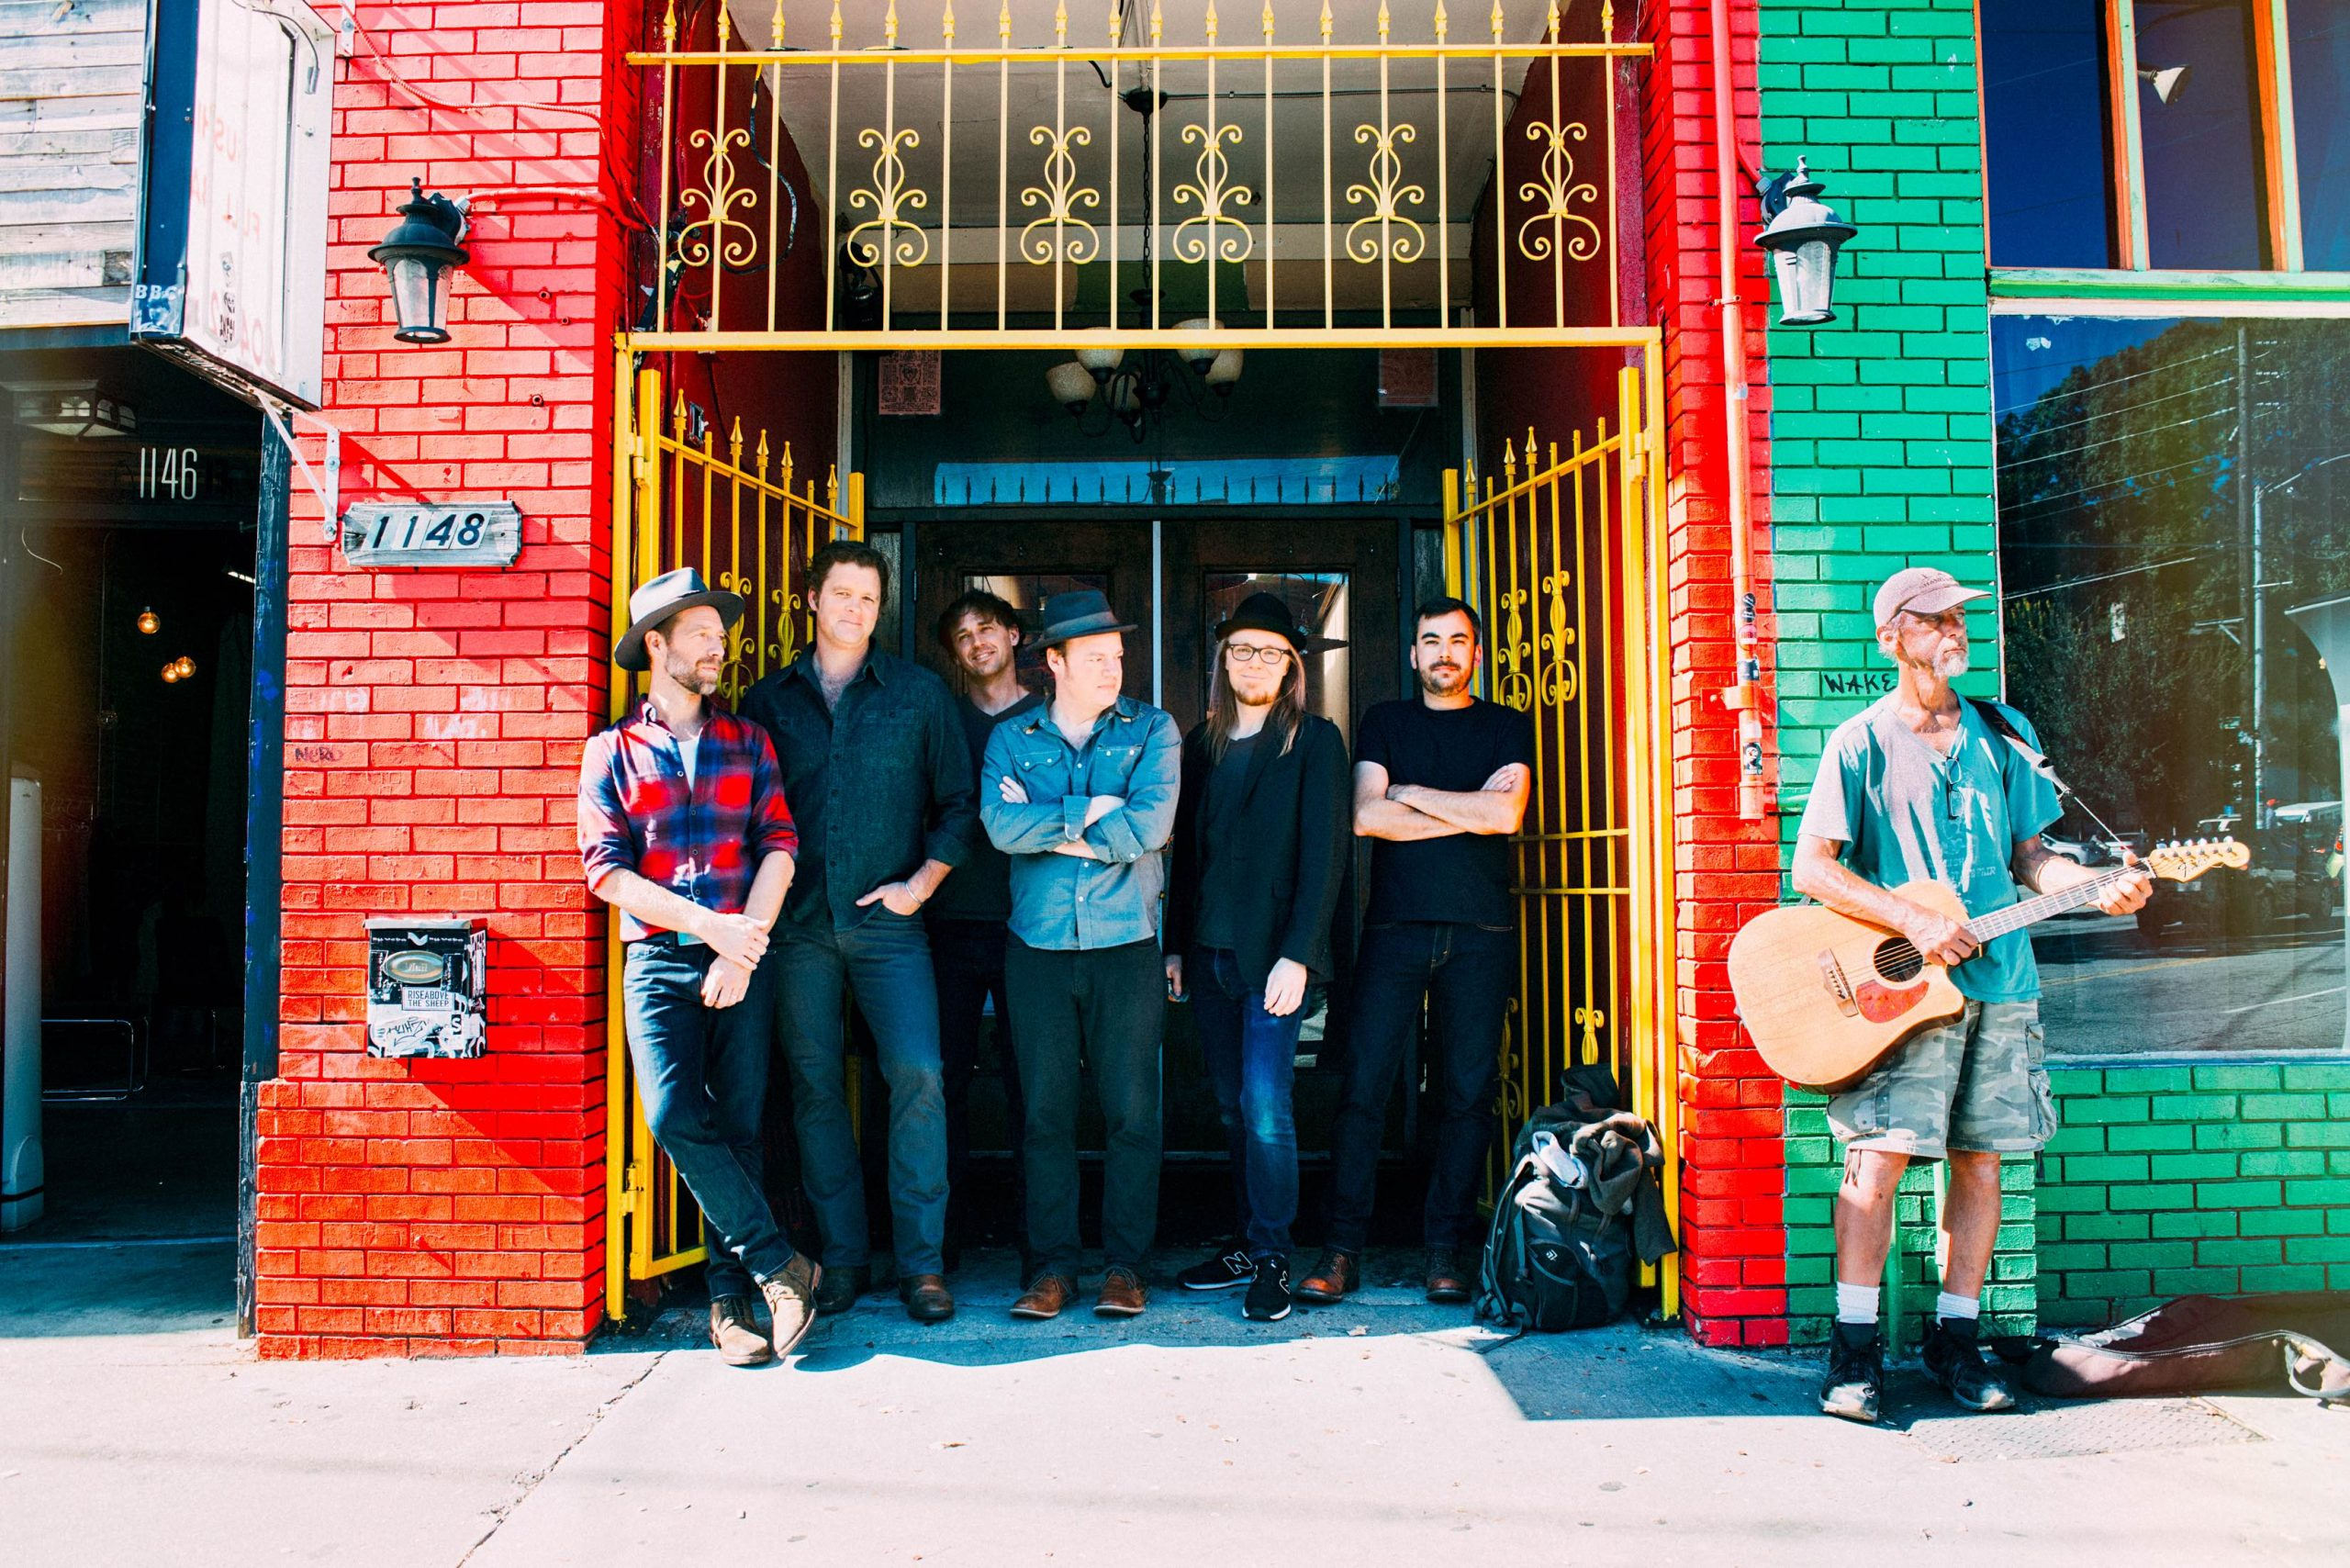 The band Steep Canyon Rangers stands together in front of a brightly colored brick building.